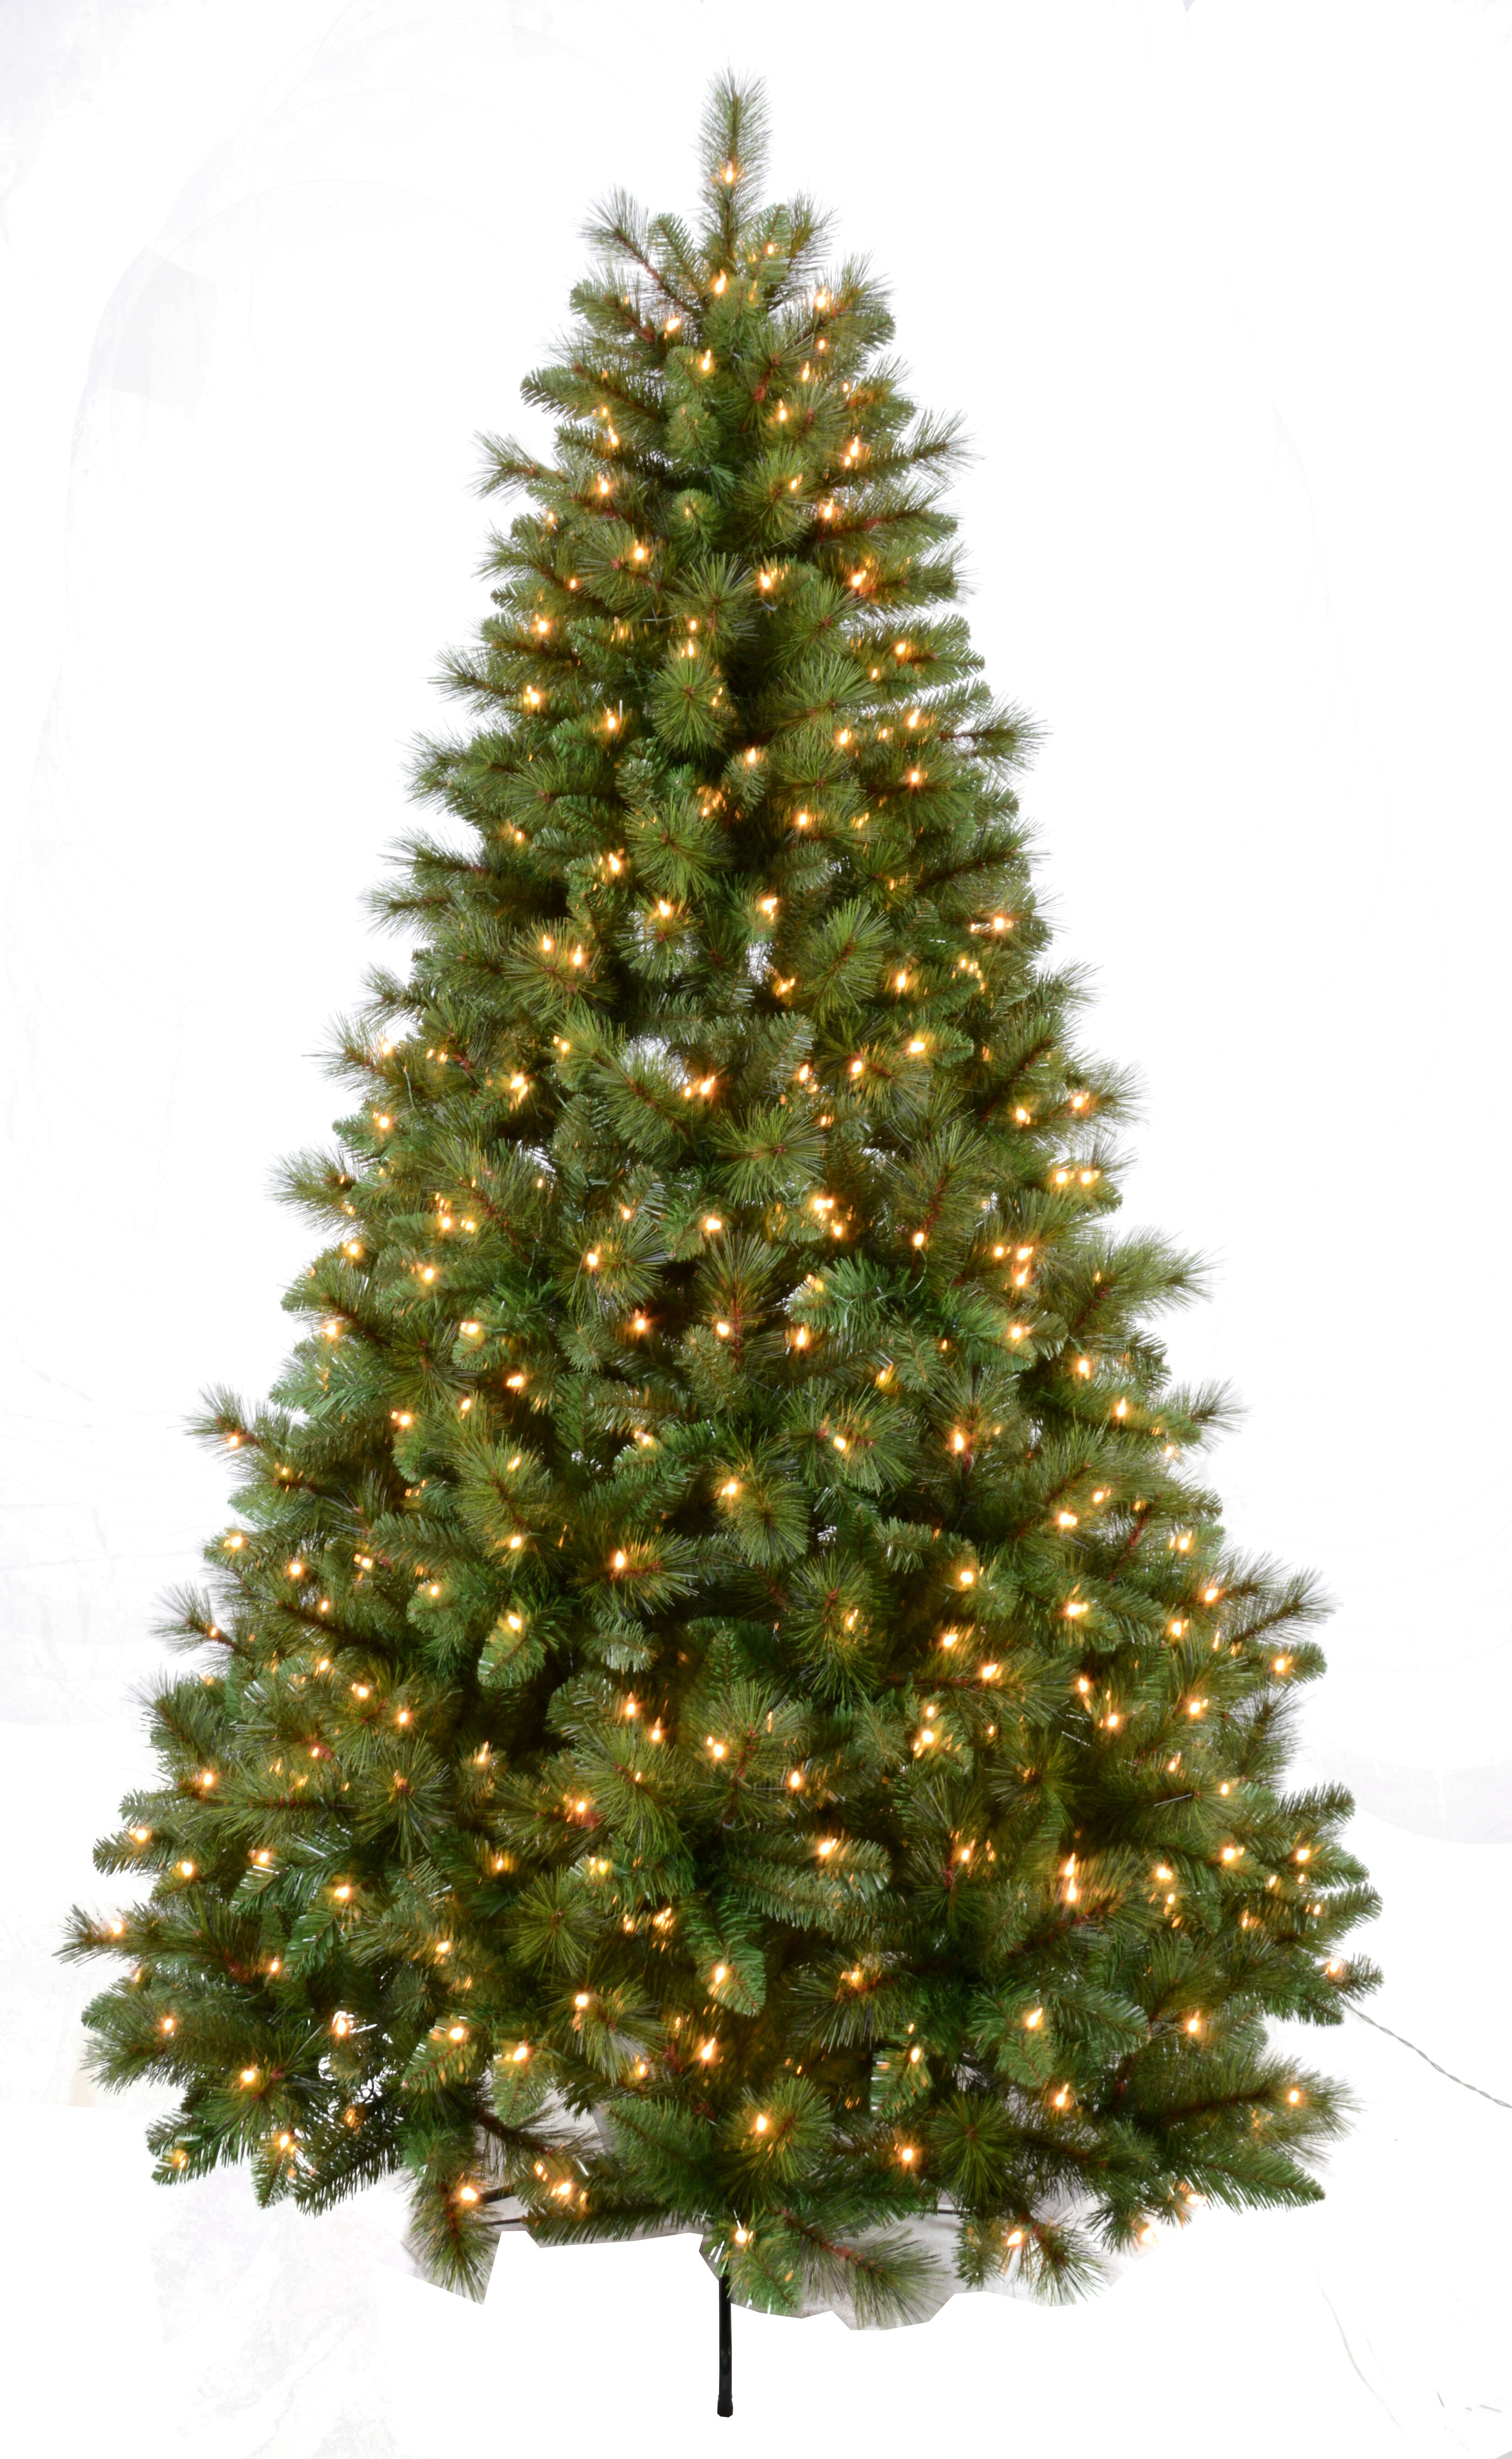 Artificial Christmas Tree Branches.Bavarian Mixed 7 5 Green Pine Artificial Christmas Tree With 650 Clear White Lights With Stand